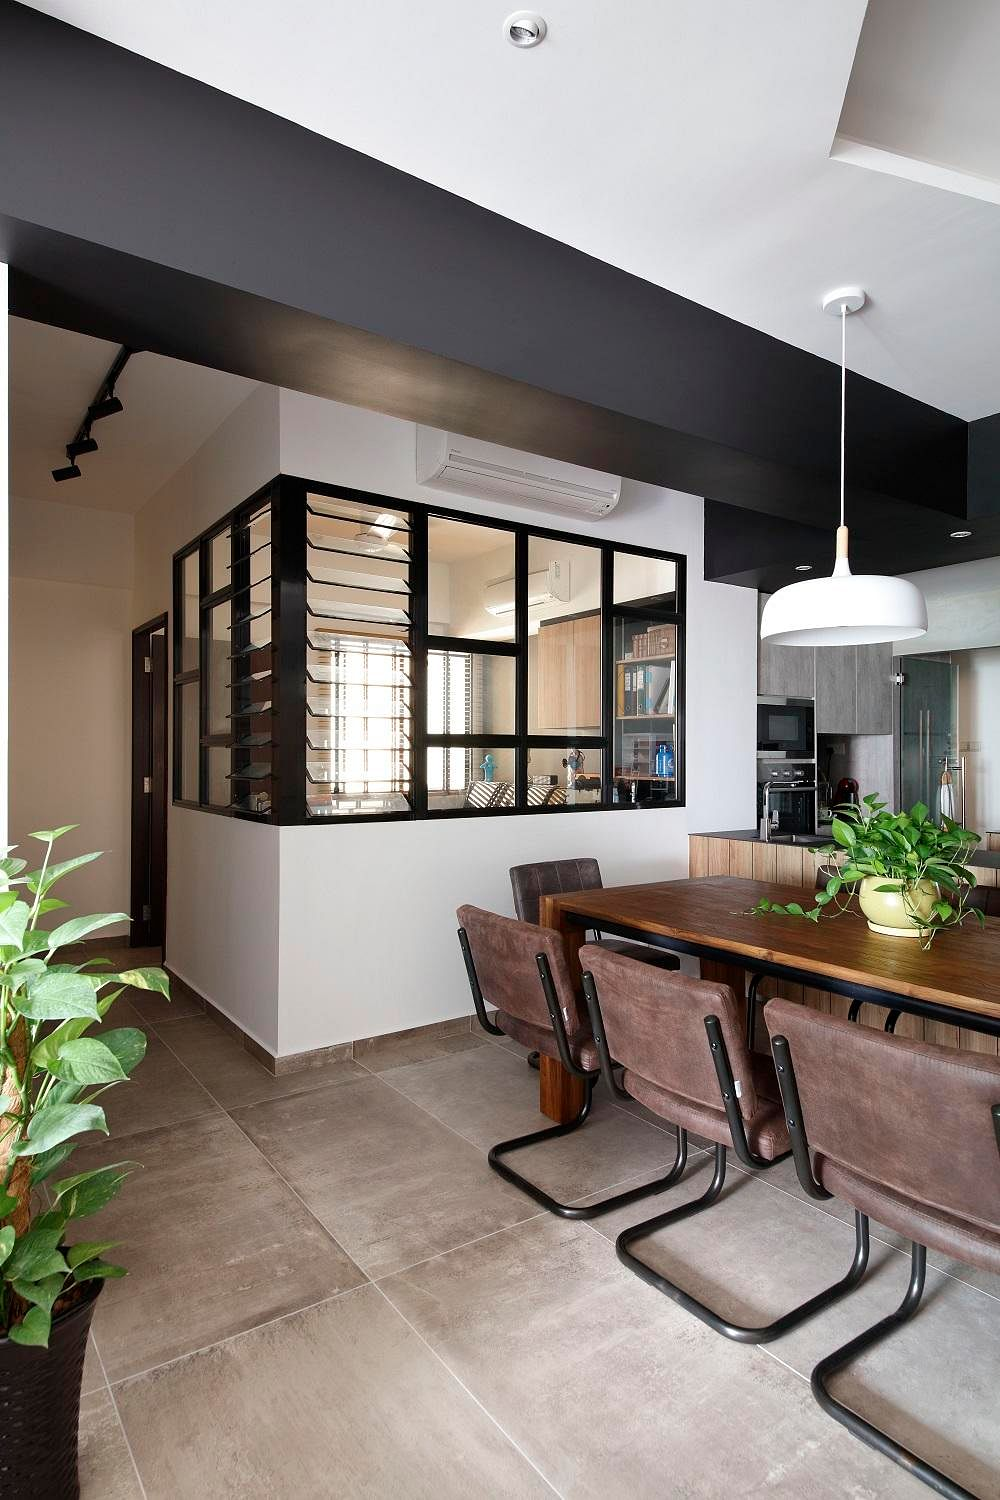 Modern Hdb Decor: House Tour: Before And After Reno Of An HDB Flat With A